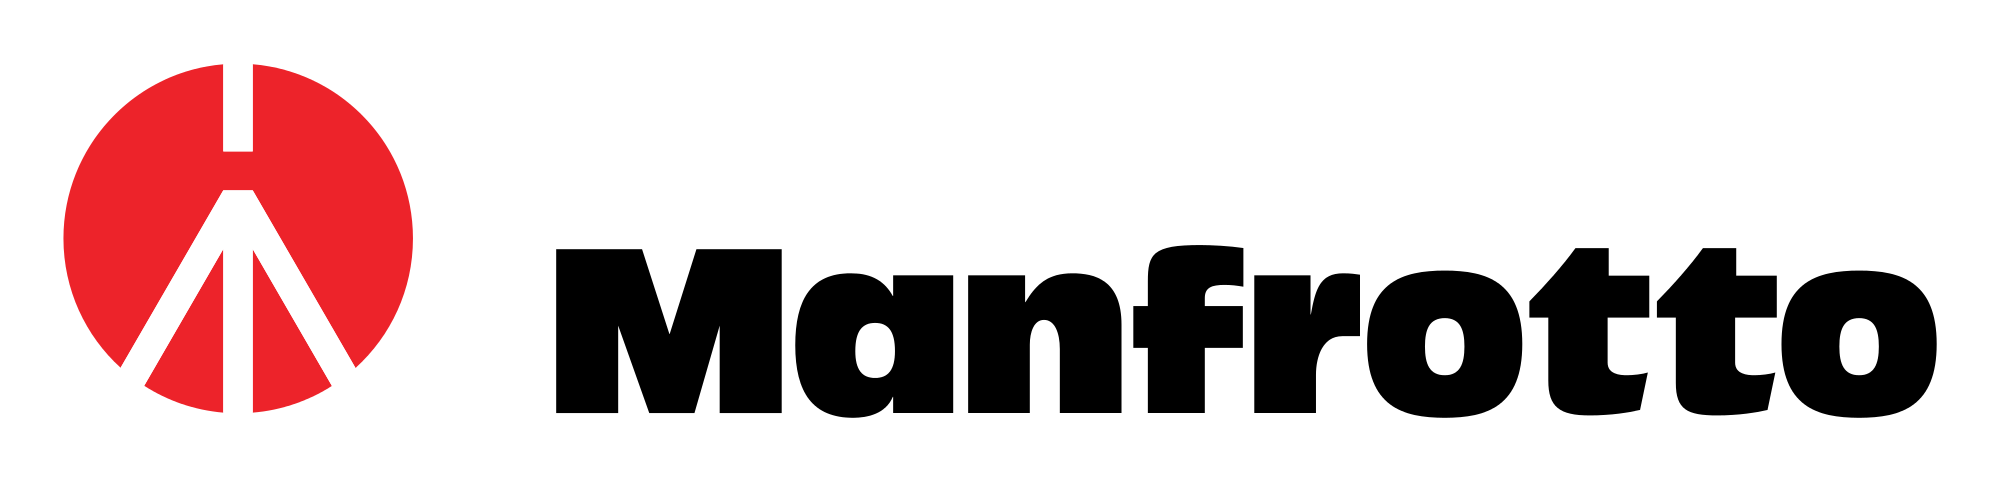 Manfrotto_Logo.png